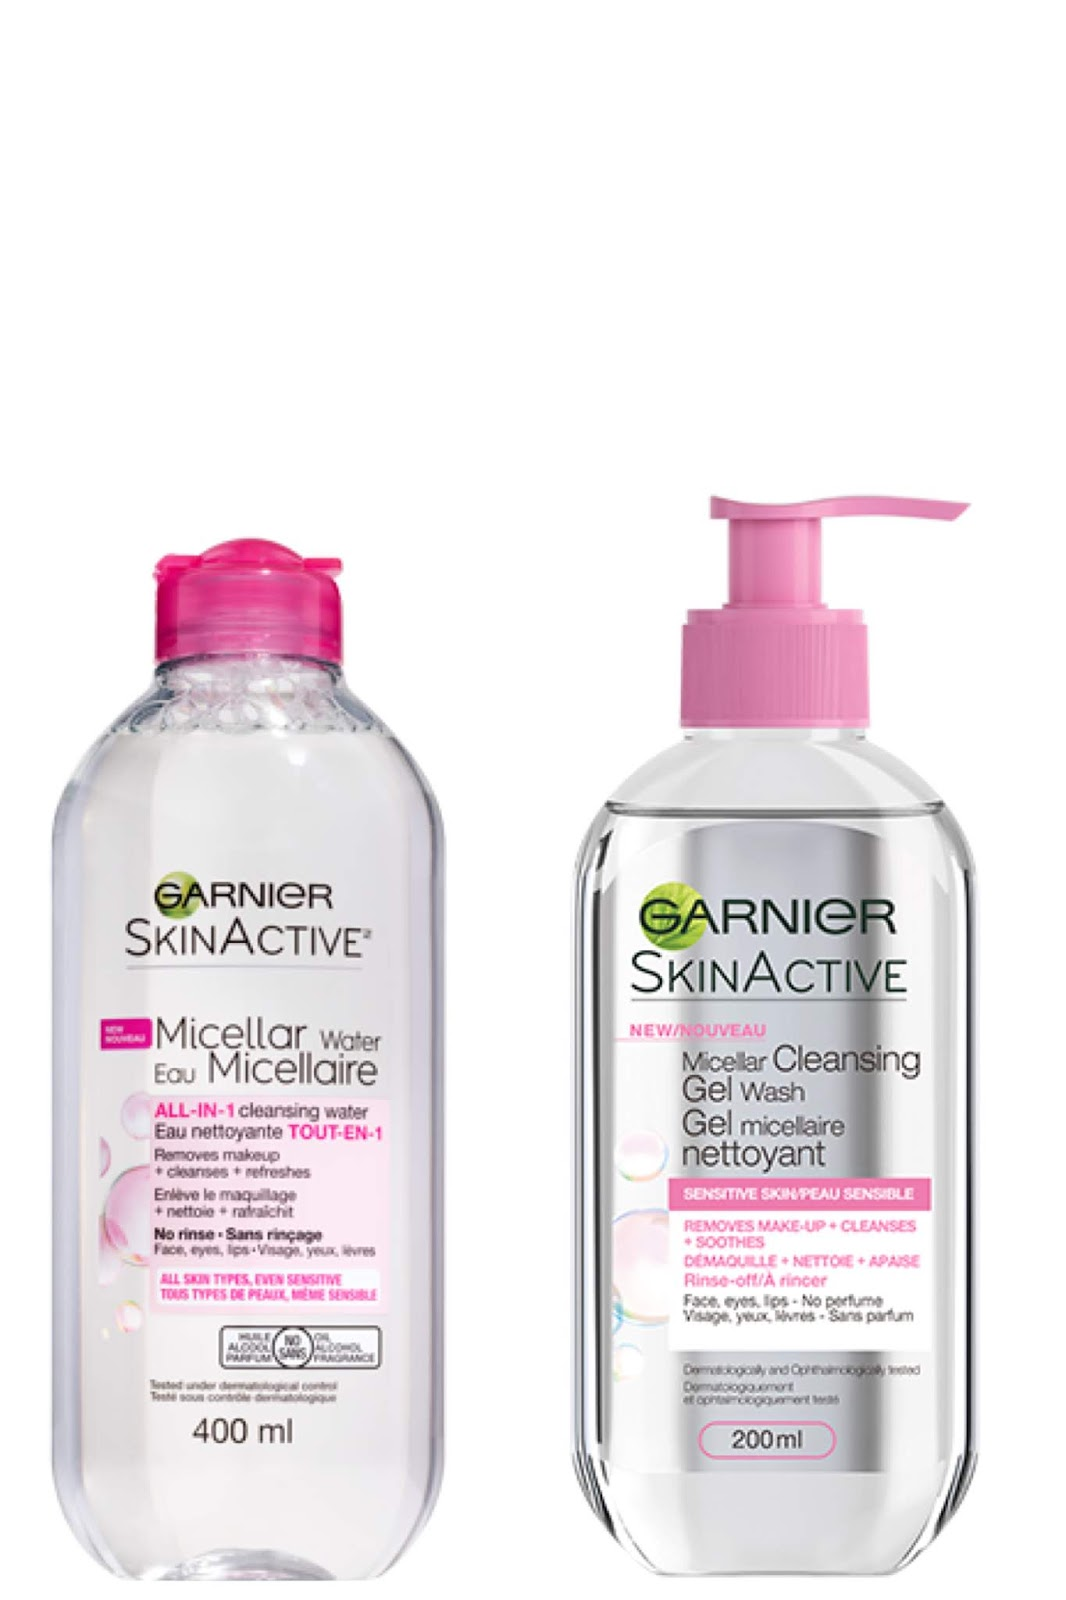 SkinActive Micellar Cleansing Water  by garnier #17